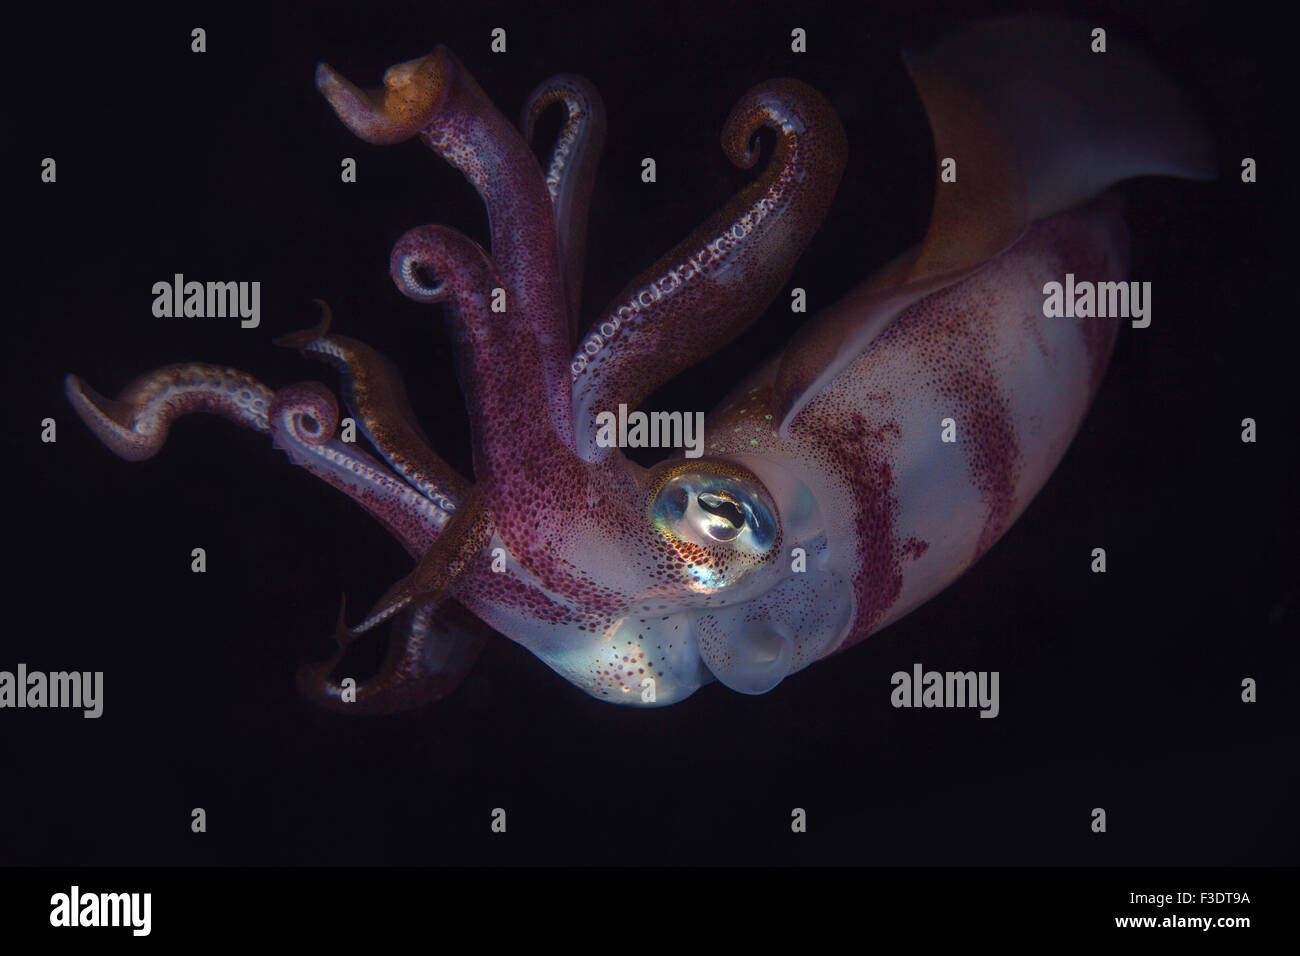 Close up of a Bigfin Reef Squid (Sepioteuthis lessoniana) at night - Stock Image